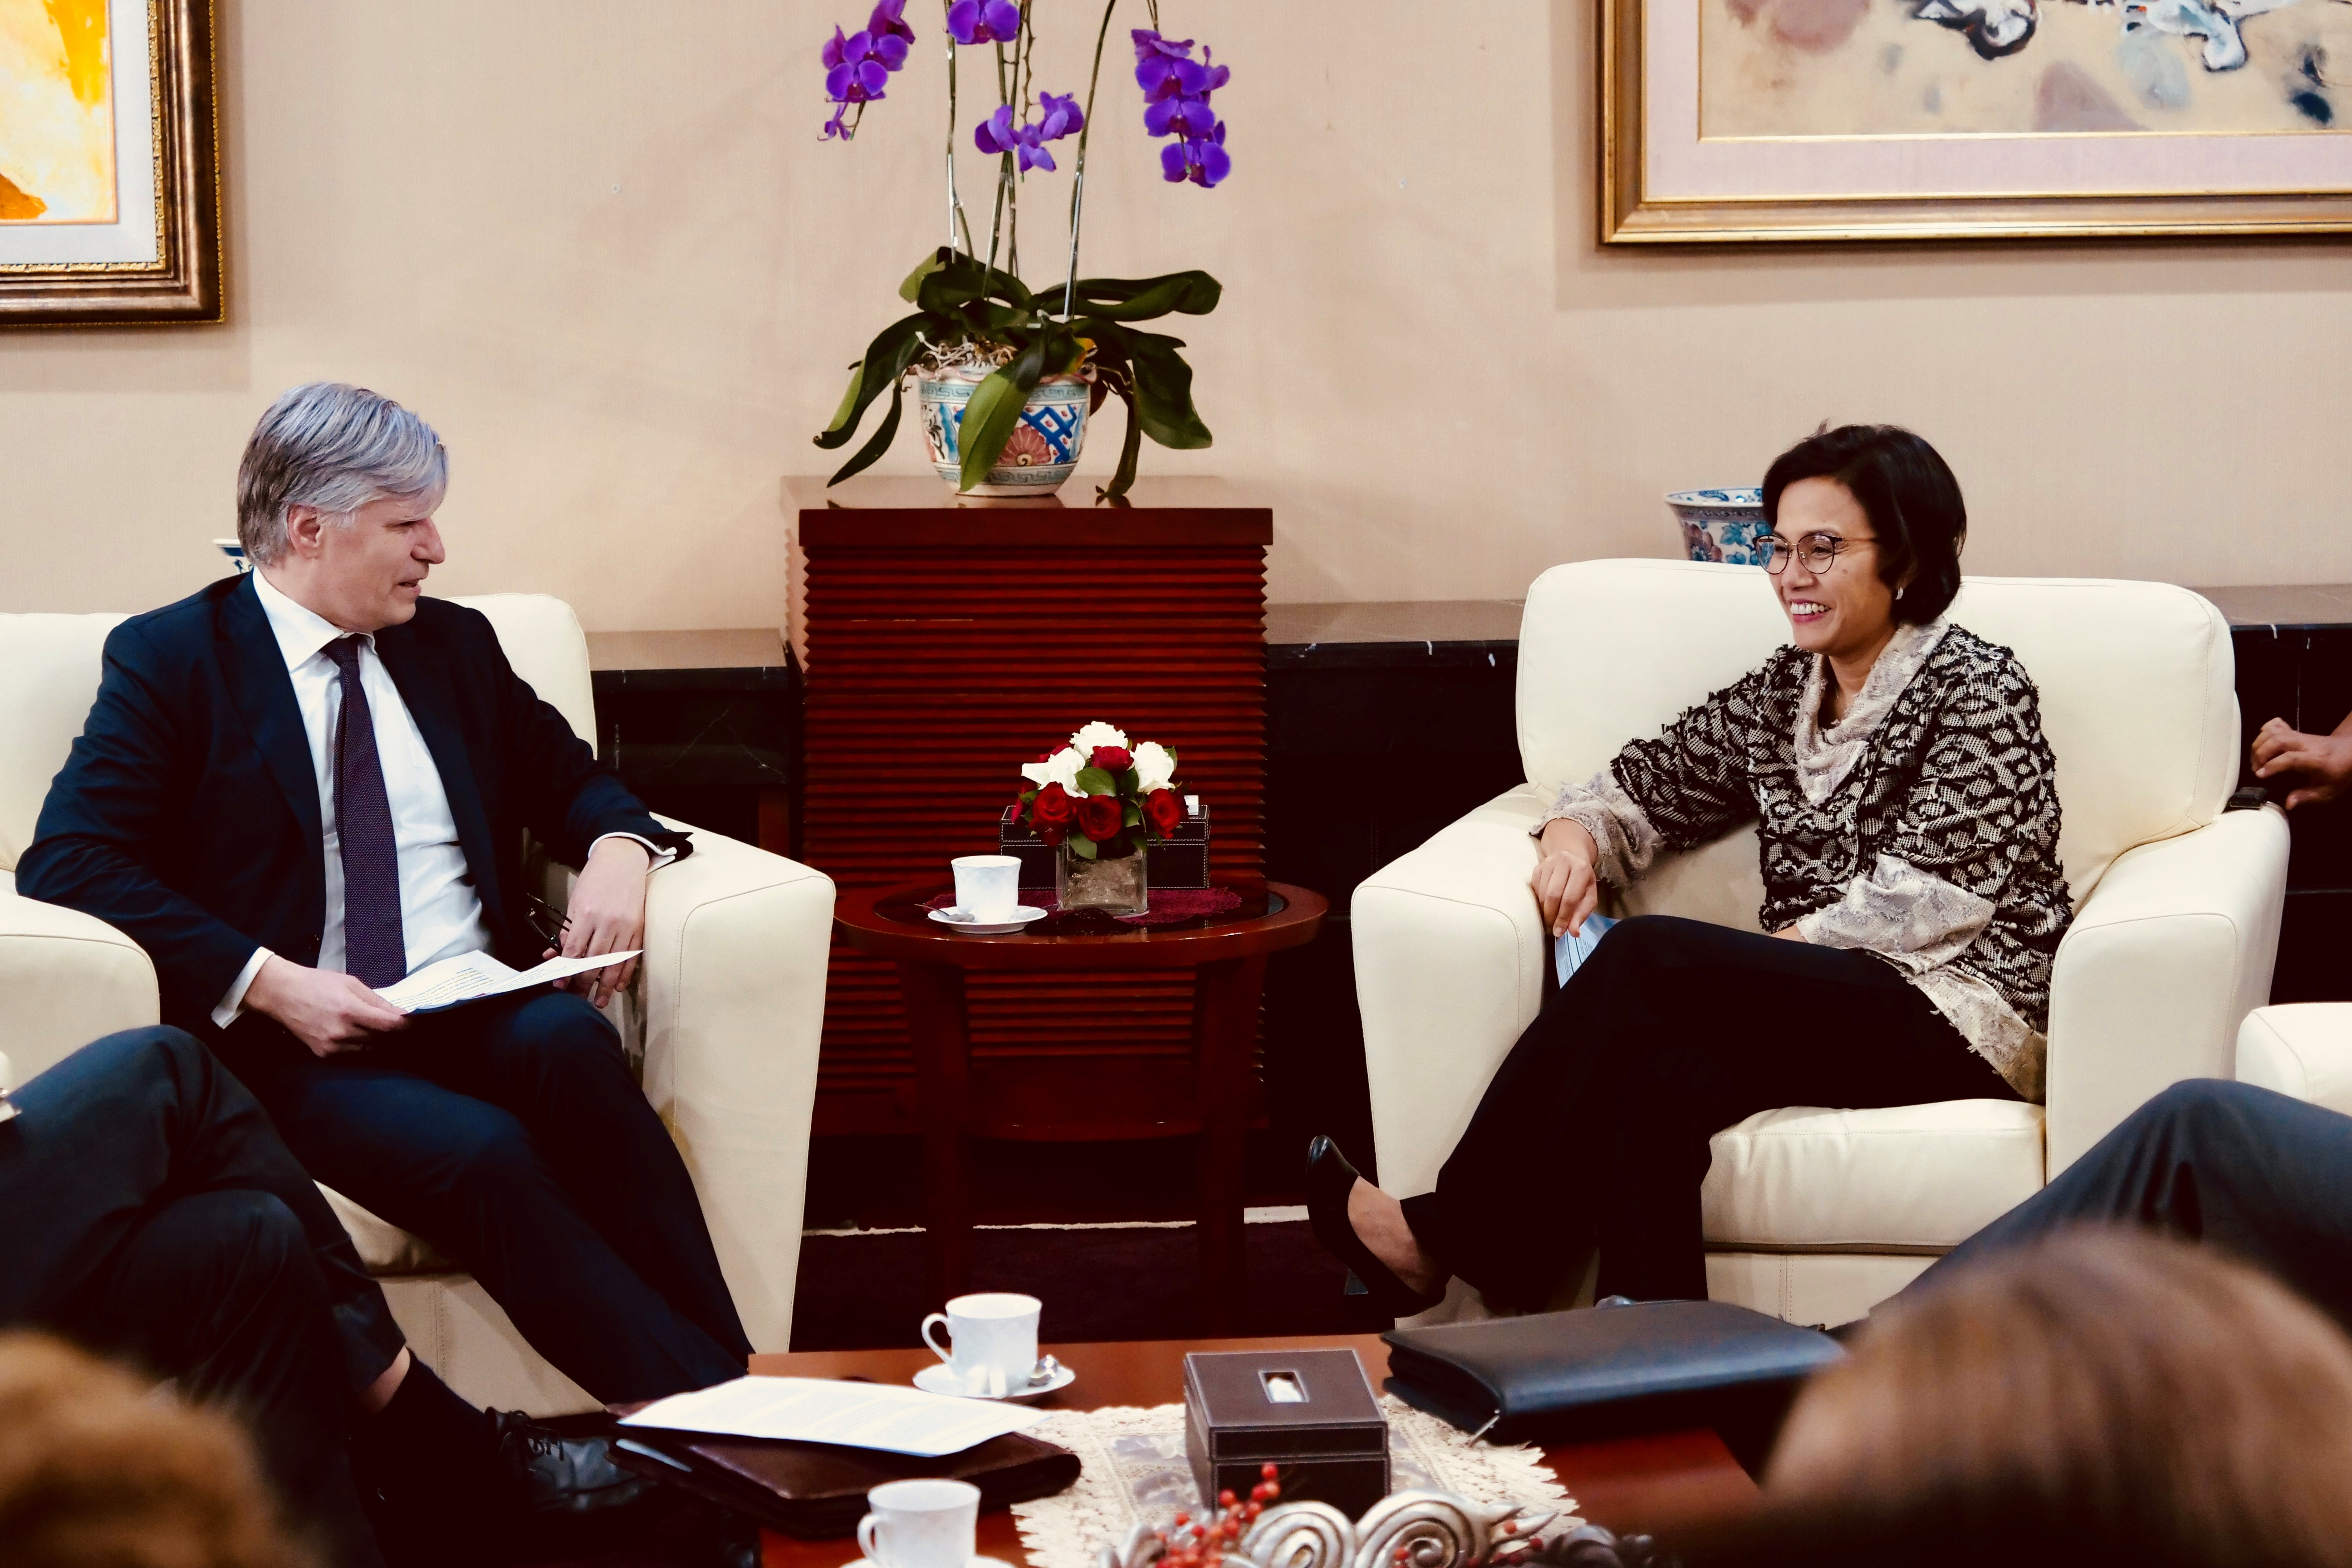 Finance Minister Sri Mulyani receiving Minister Elvestuen in the Ministry of Finance.